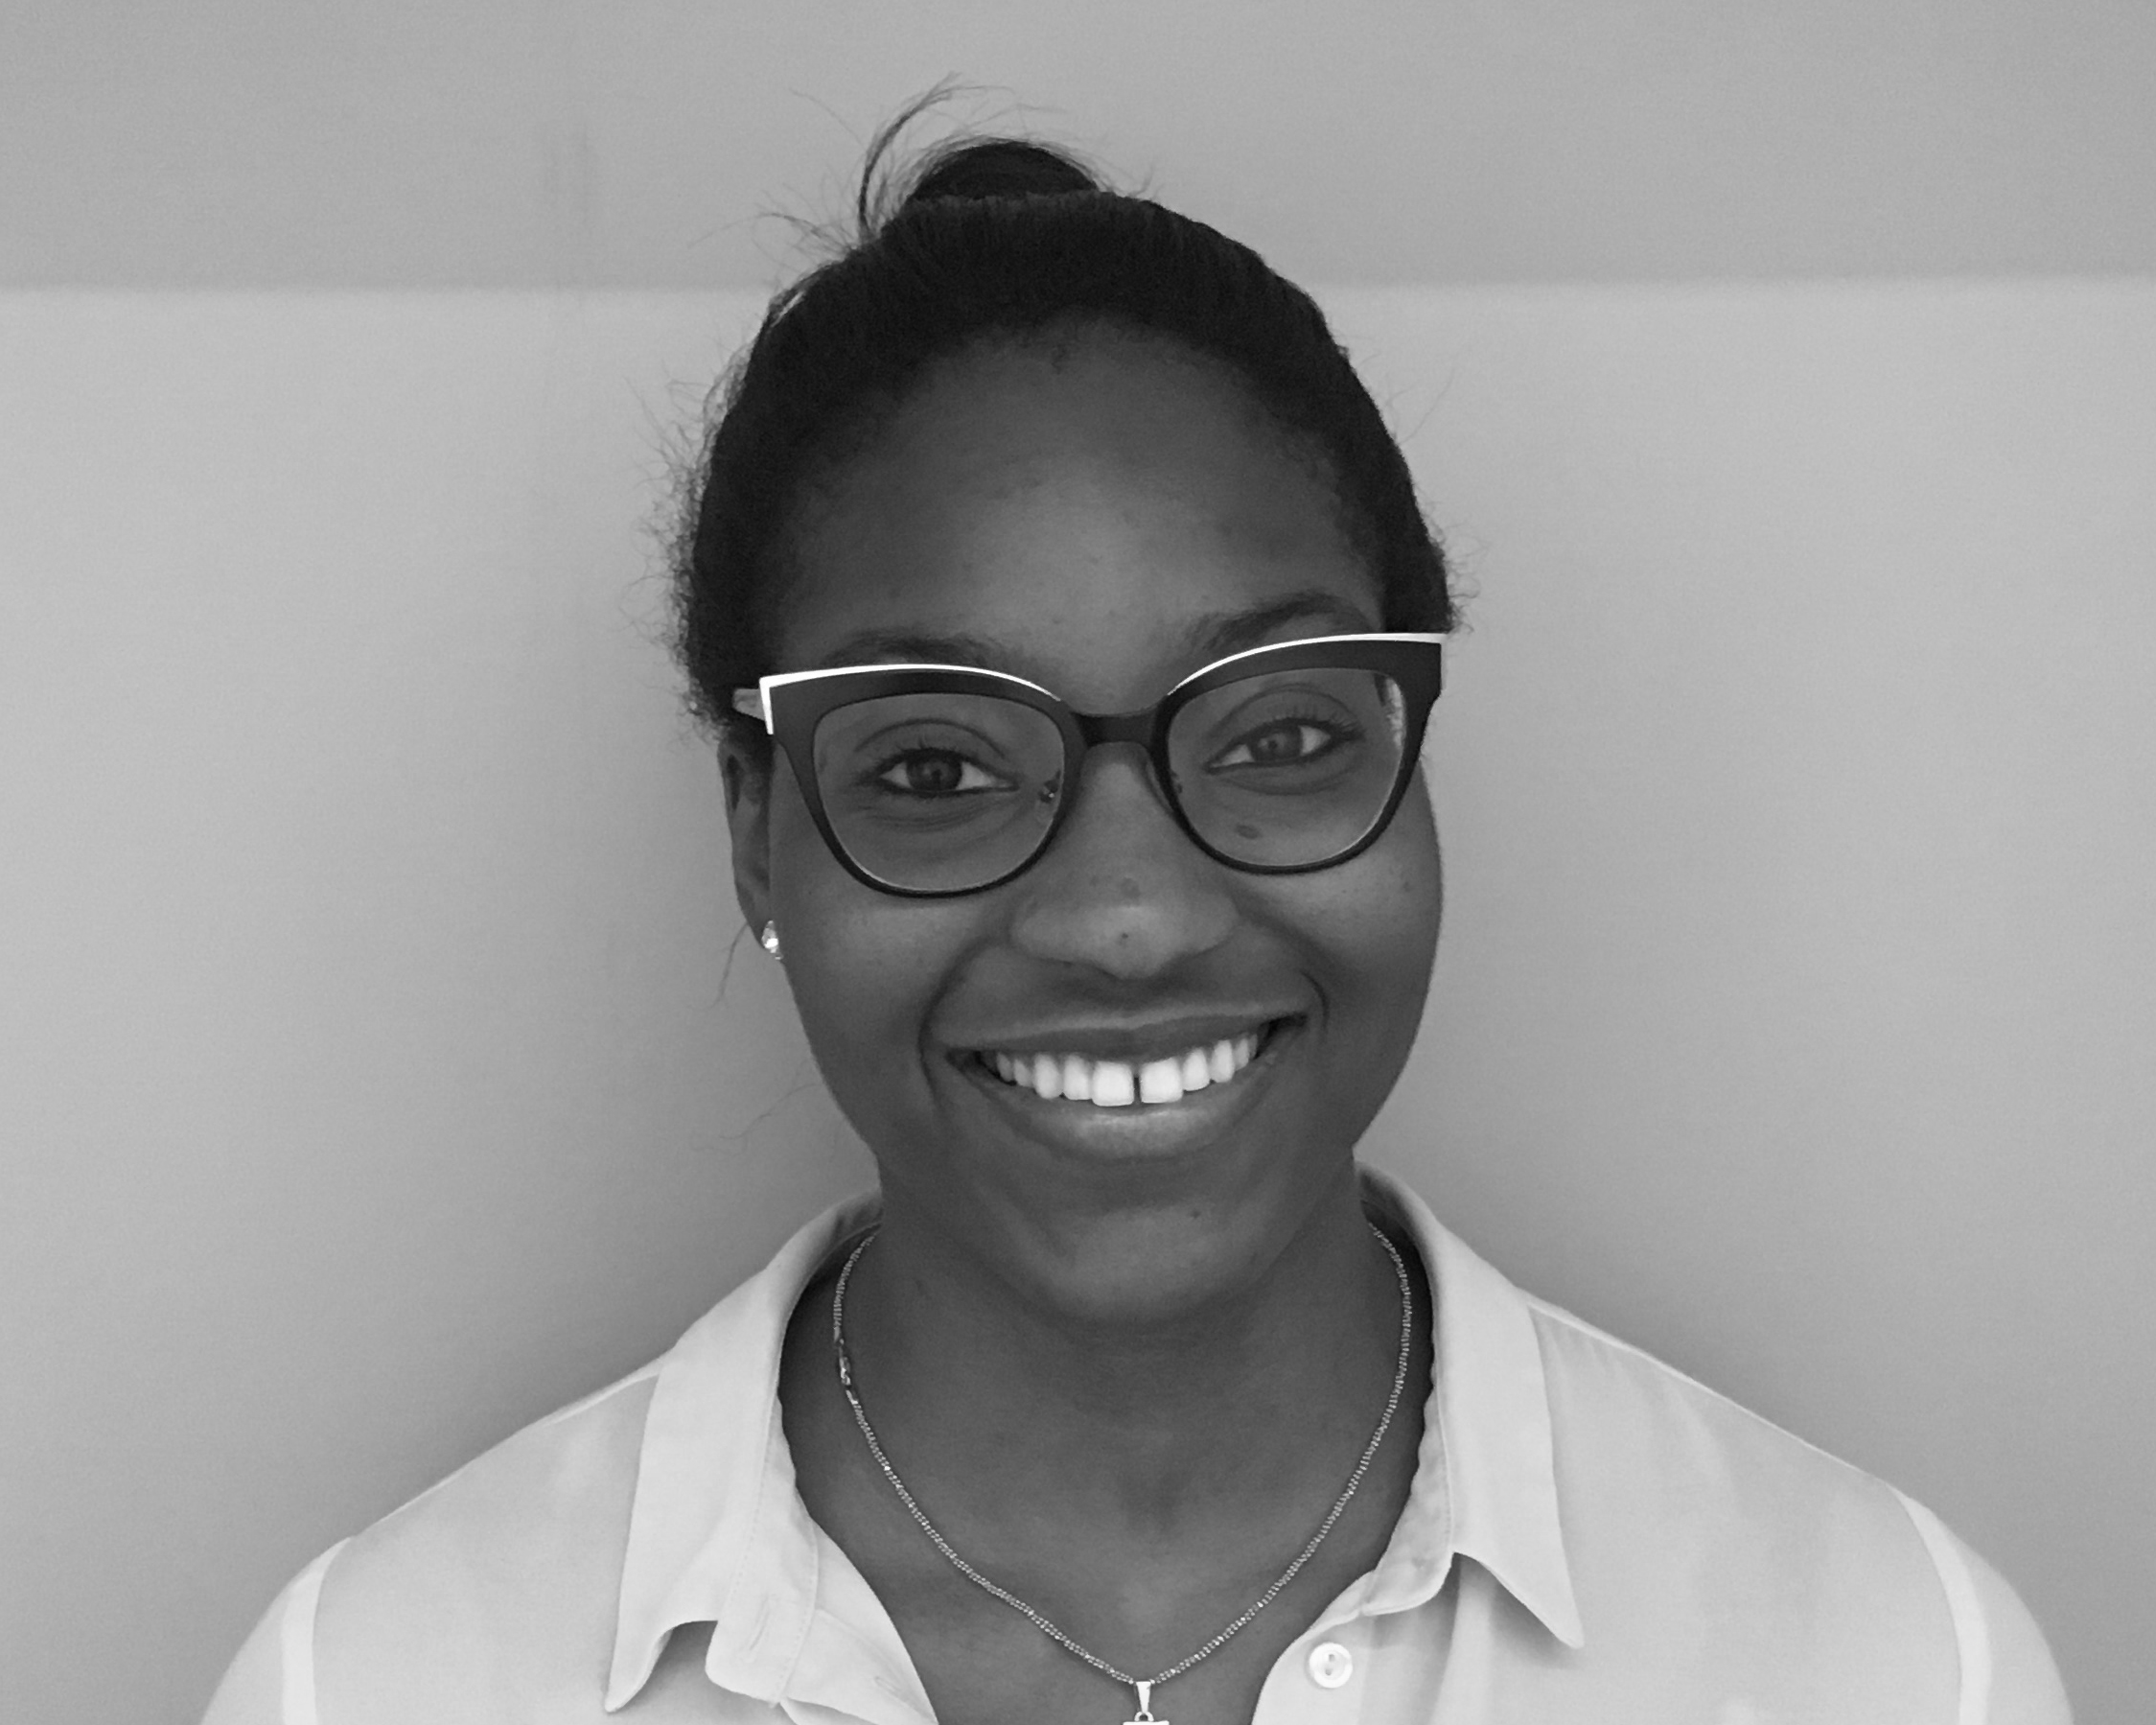 Oyingraduated from Loughborough University as a Chemical Engineer in July 2017. She then joined the Energy Team at BuroHappold Engineering […]